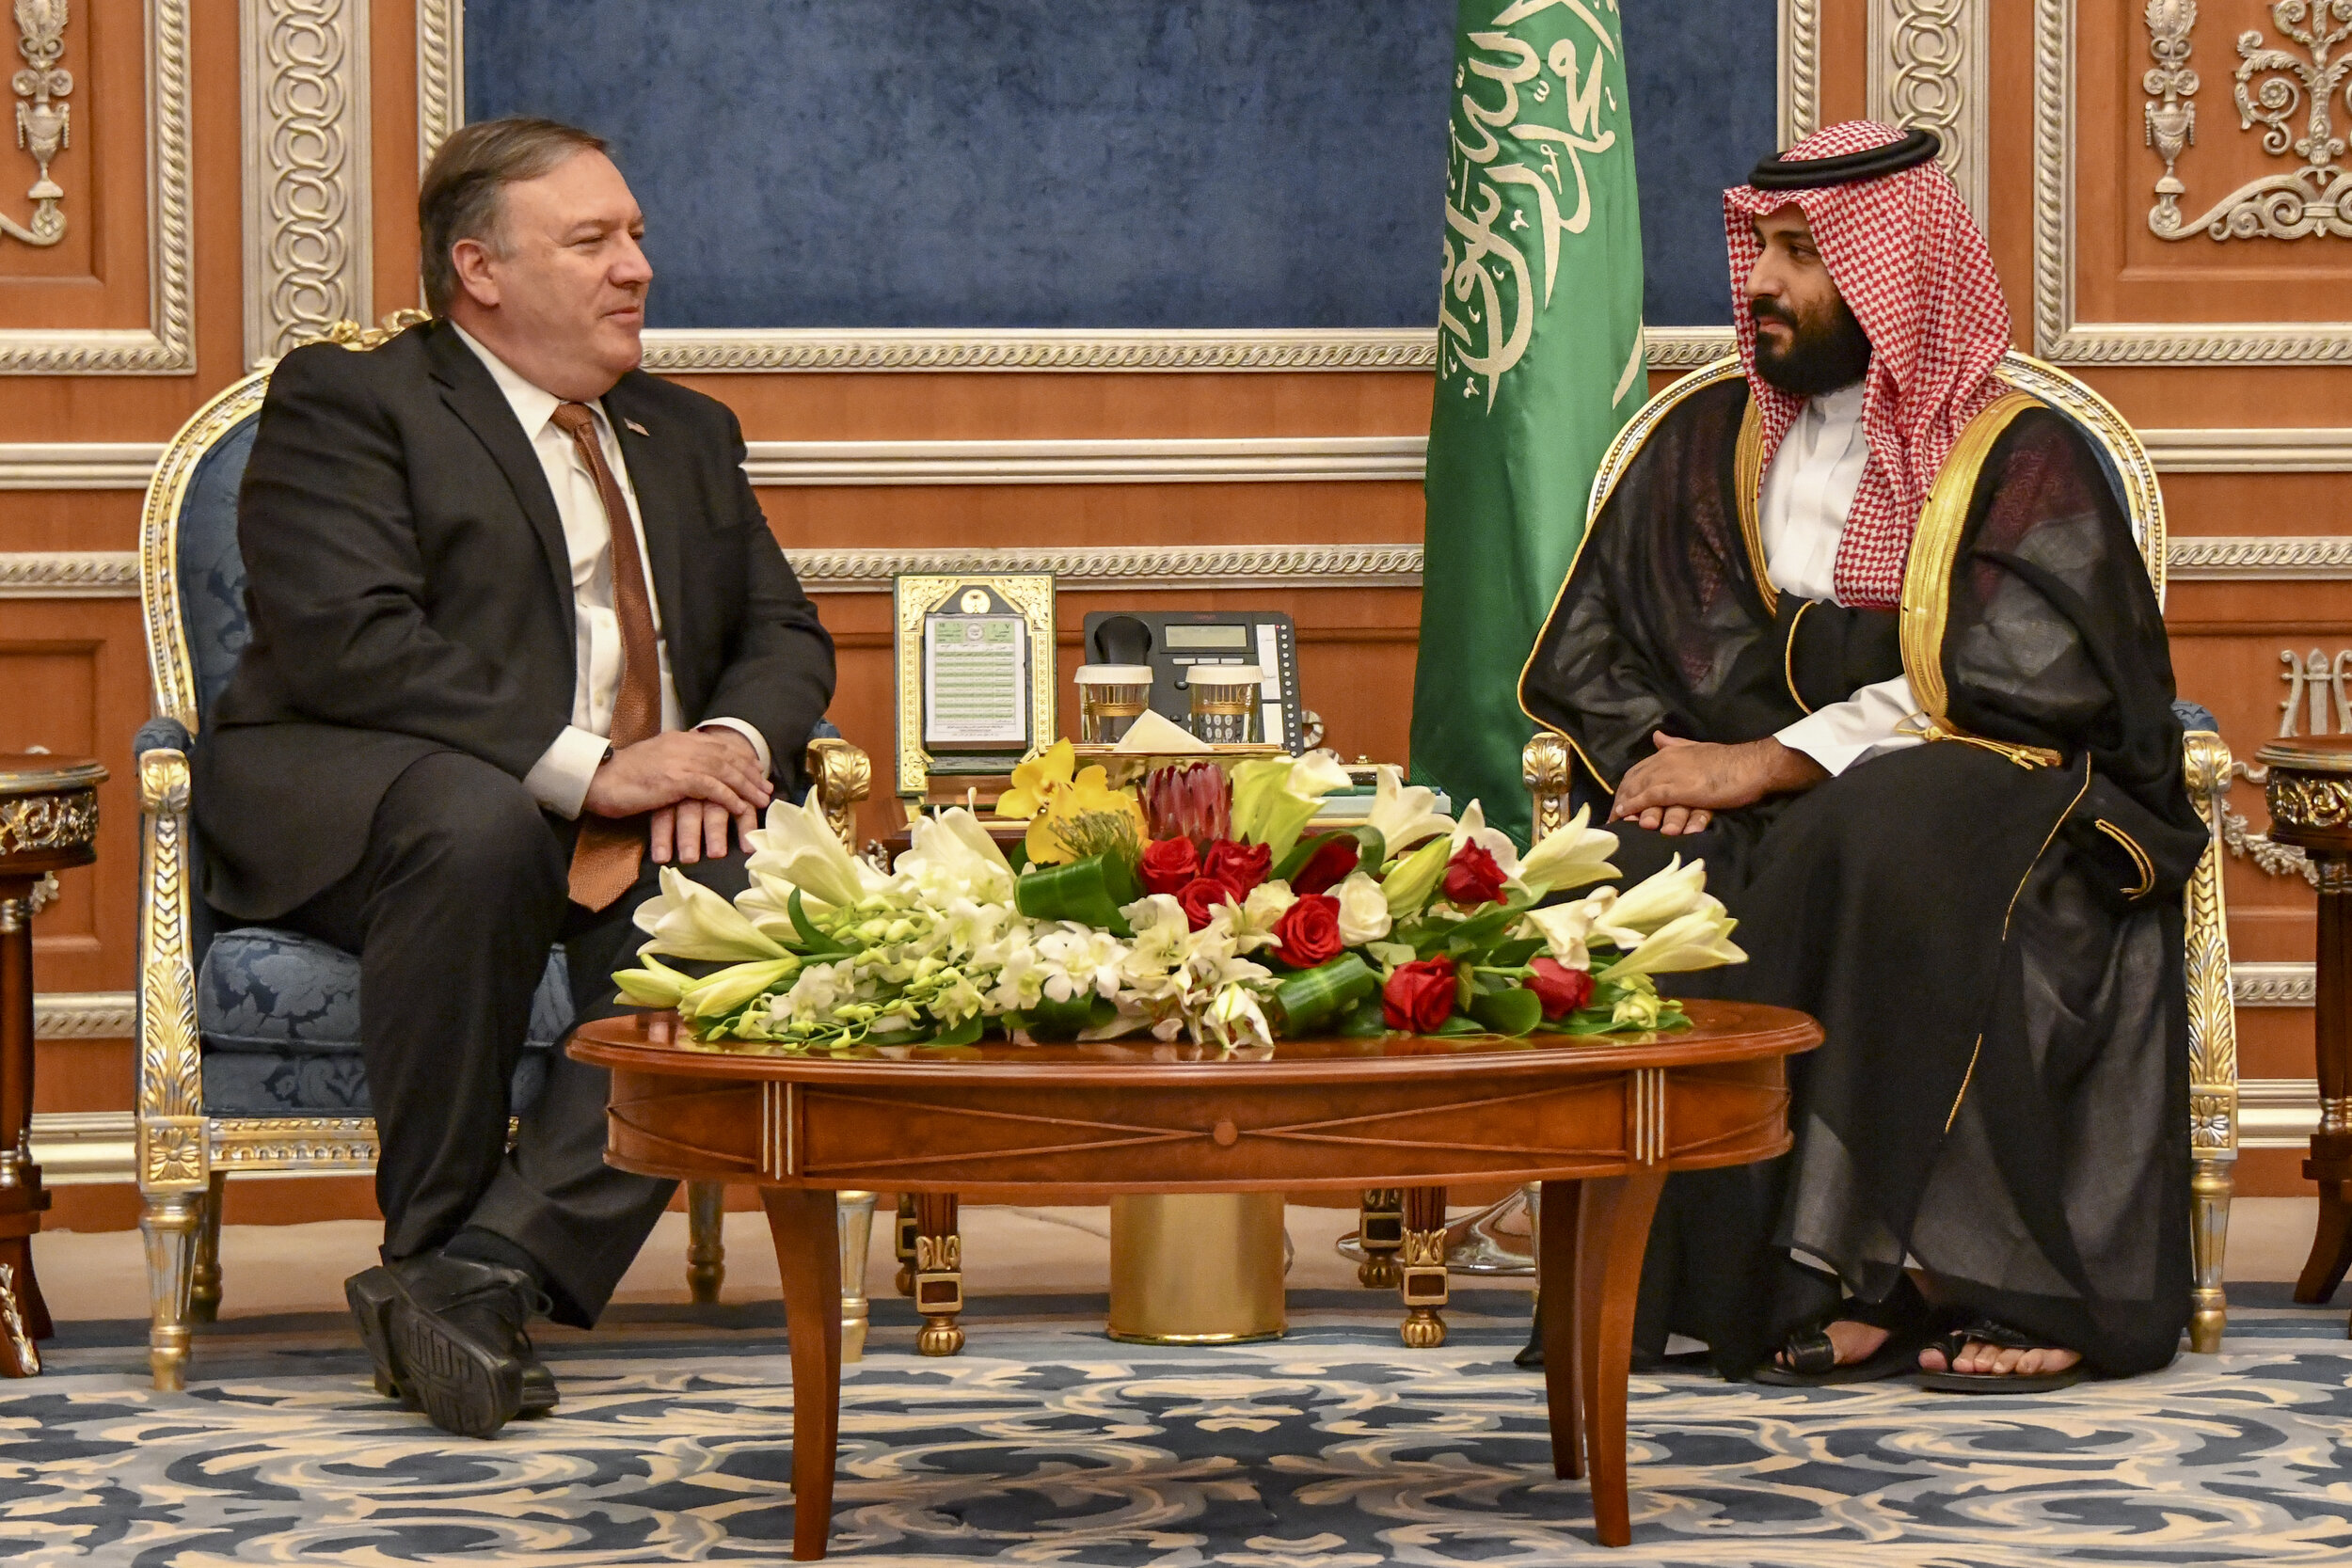 PICTURED:  Secretary of State Mike Pompeo sits down with Saudi Crown Prince Mohammed bin Salman.